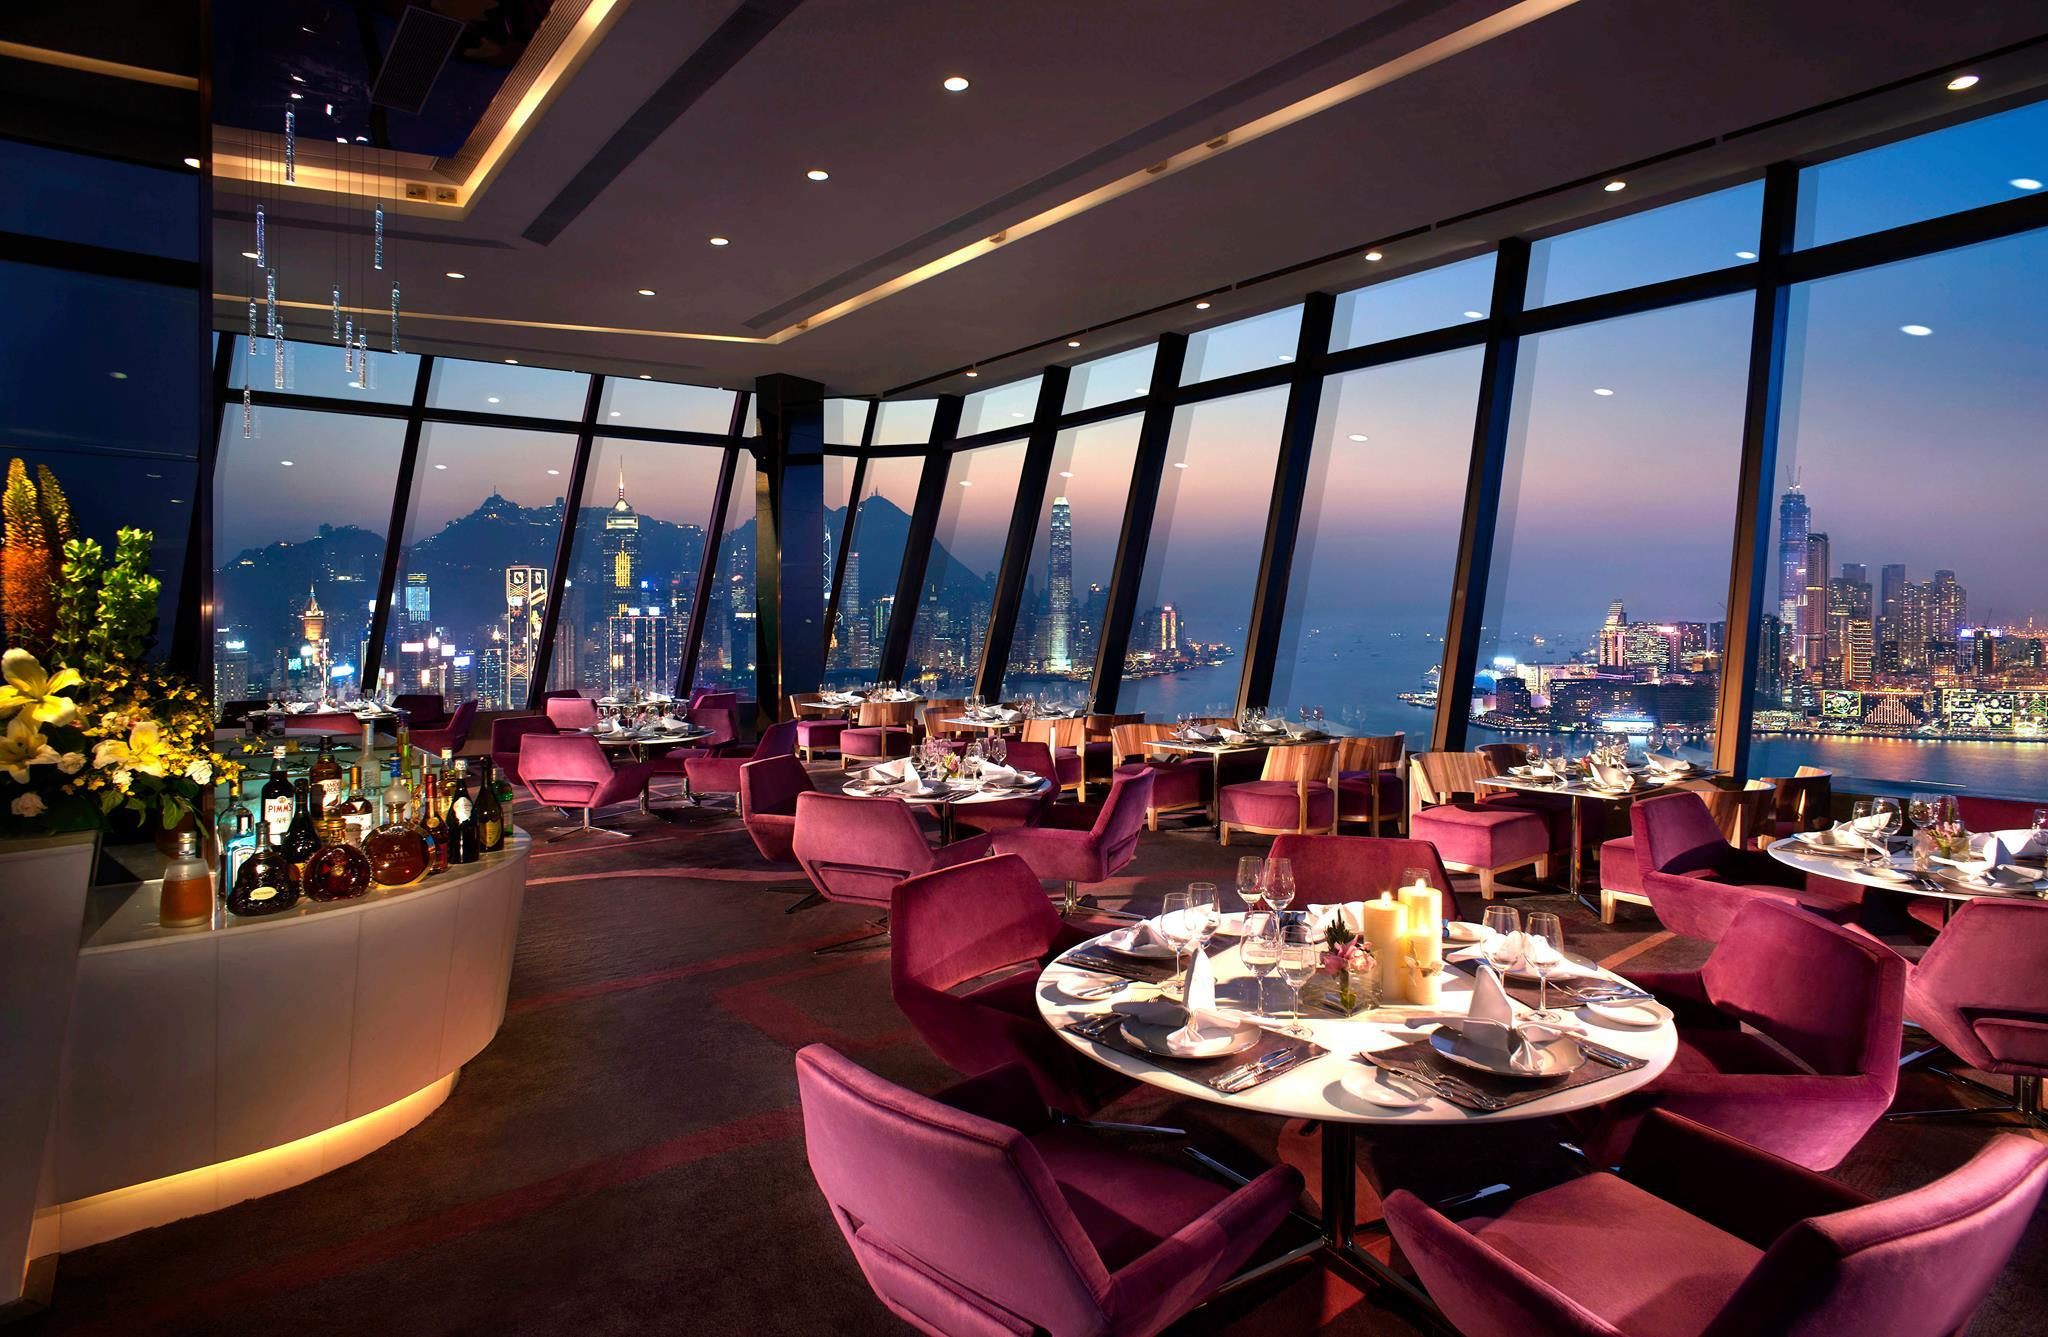 The best restaurants in Hong Kong with epic views